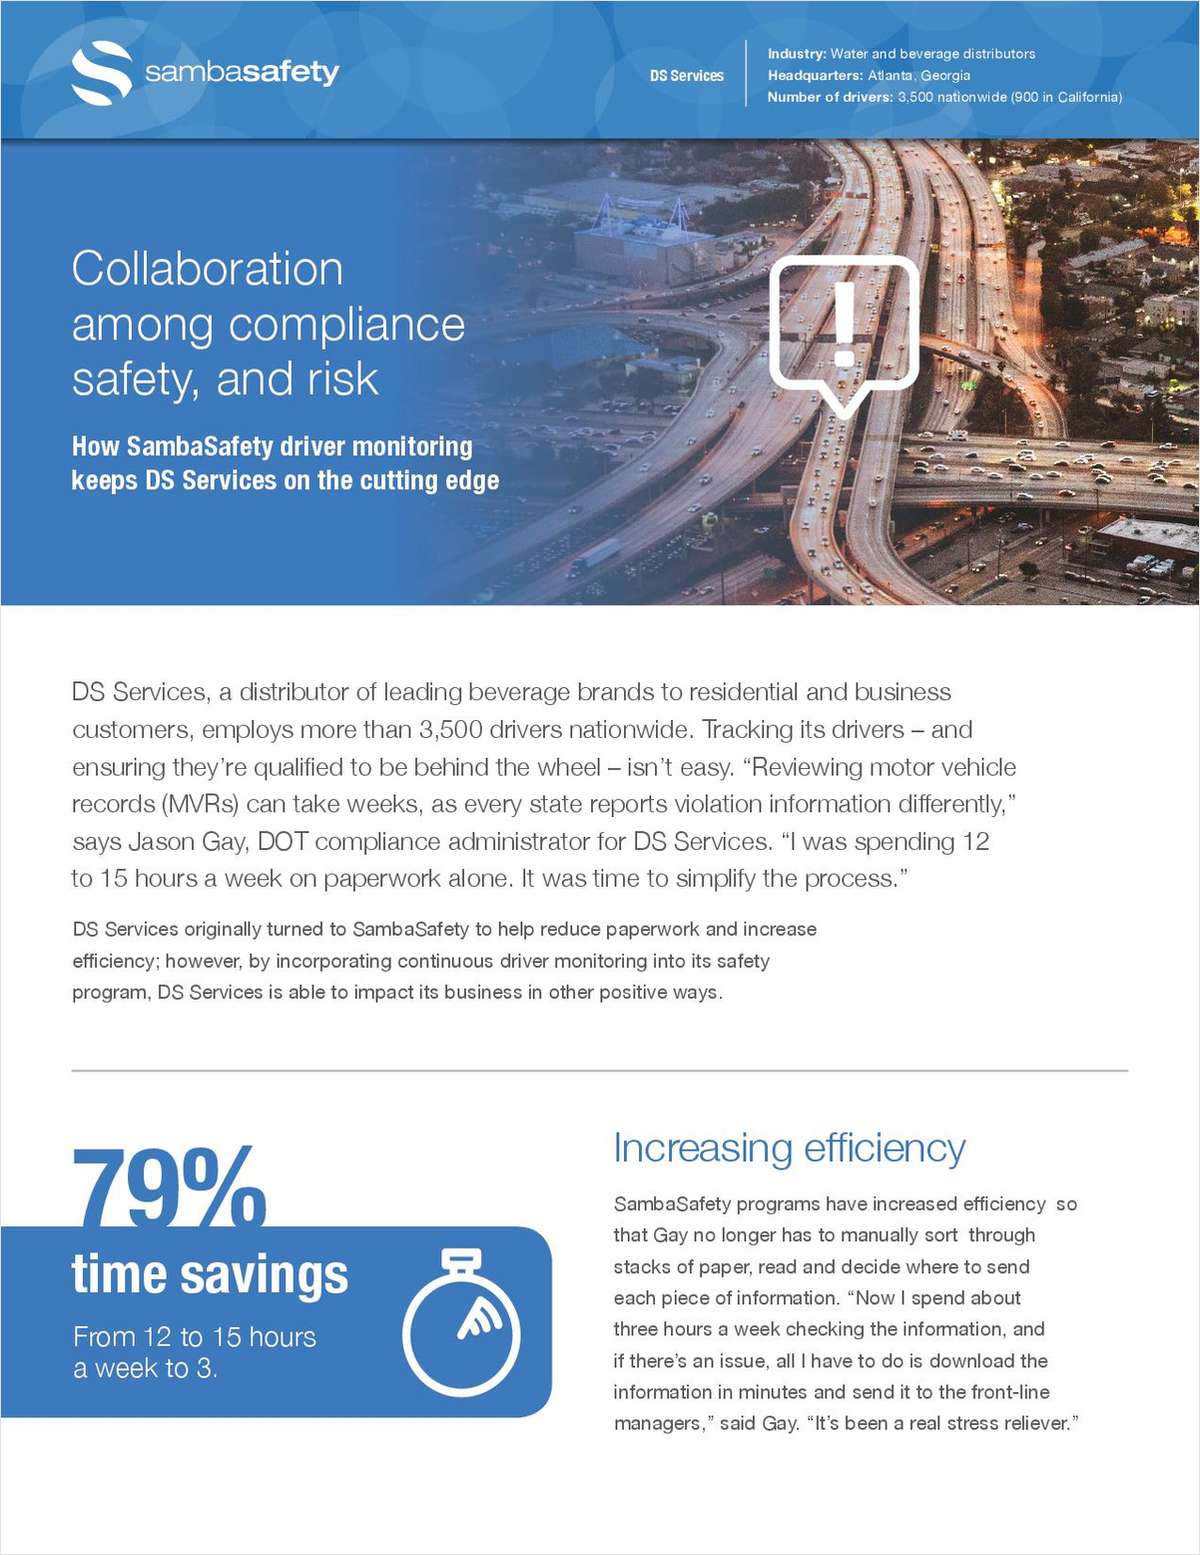 How SambaSafety driver monitoring keeps DS Services on the cutting edge